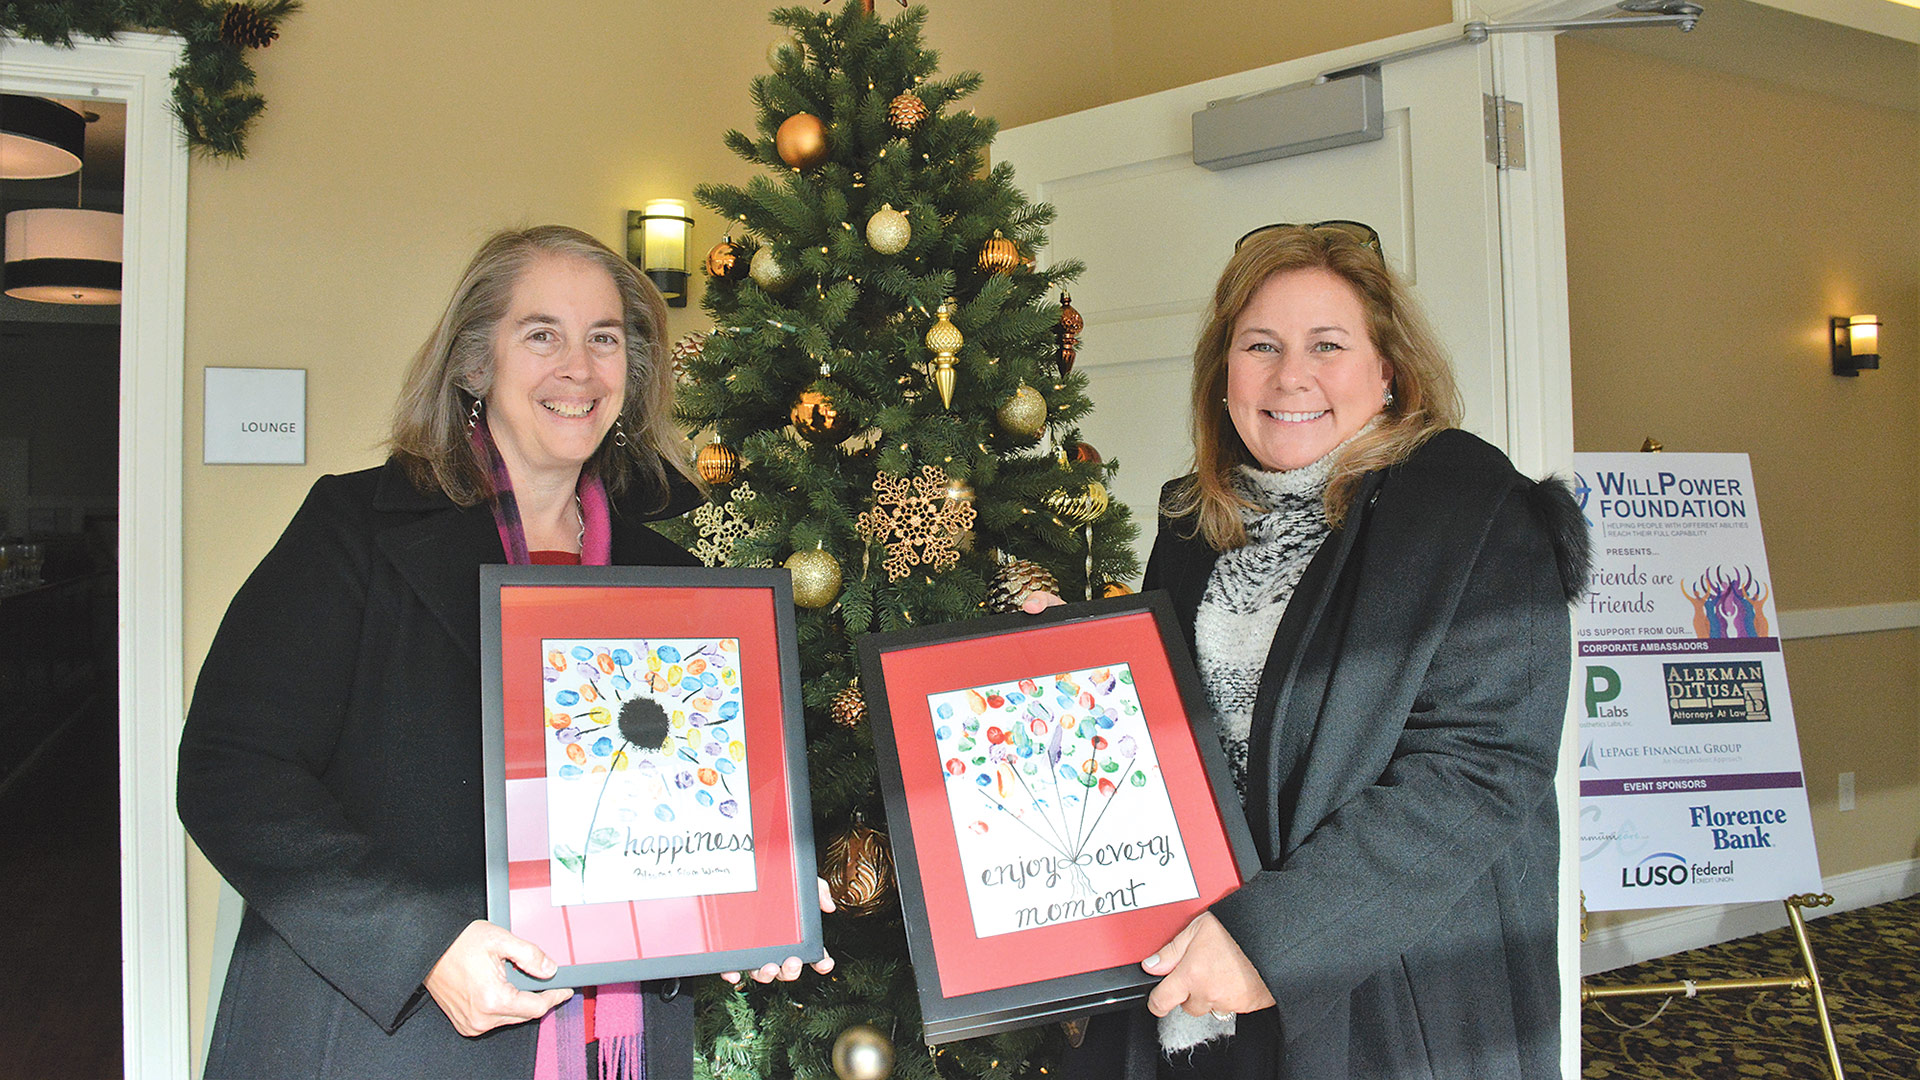 Sharon Dufour of LUSO Federal Credit Union and Kim Anderson with art they won at the auction.